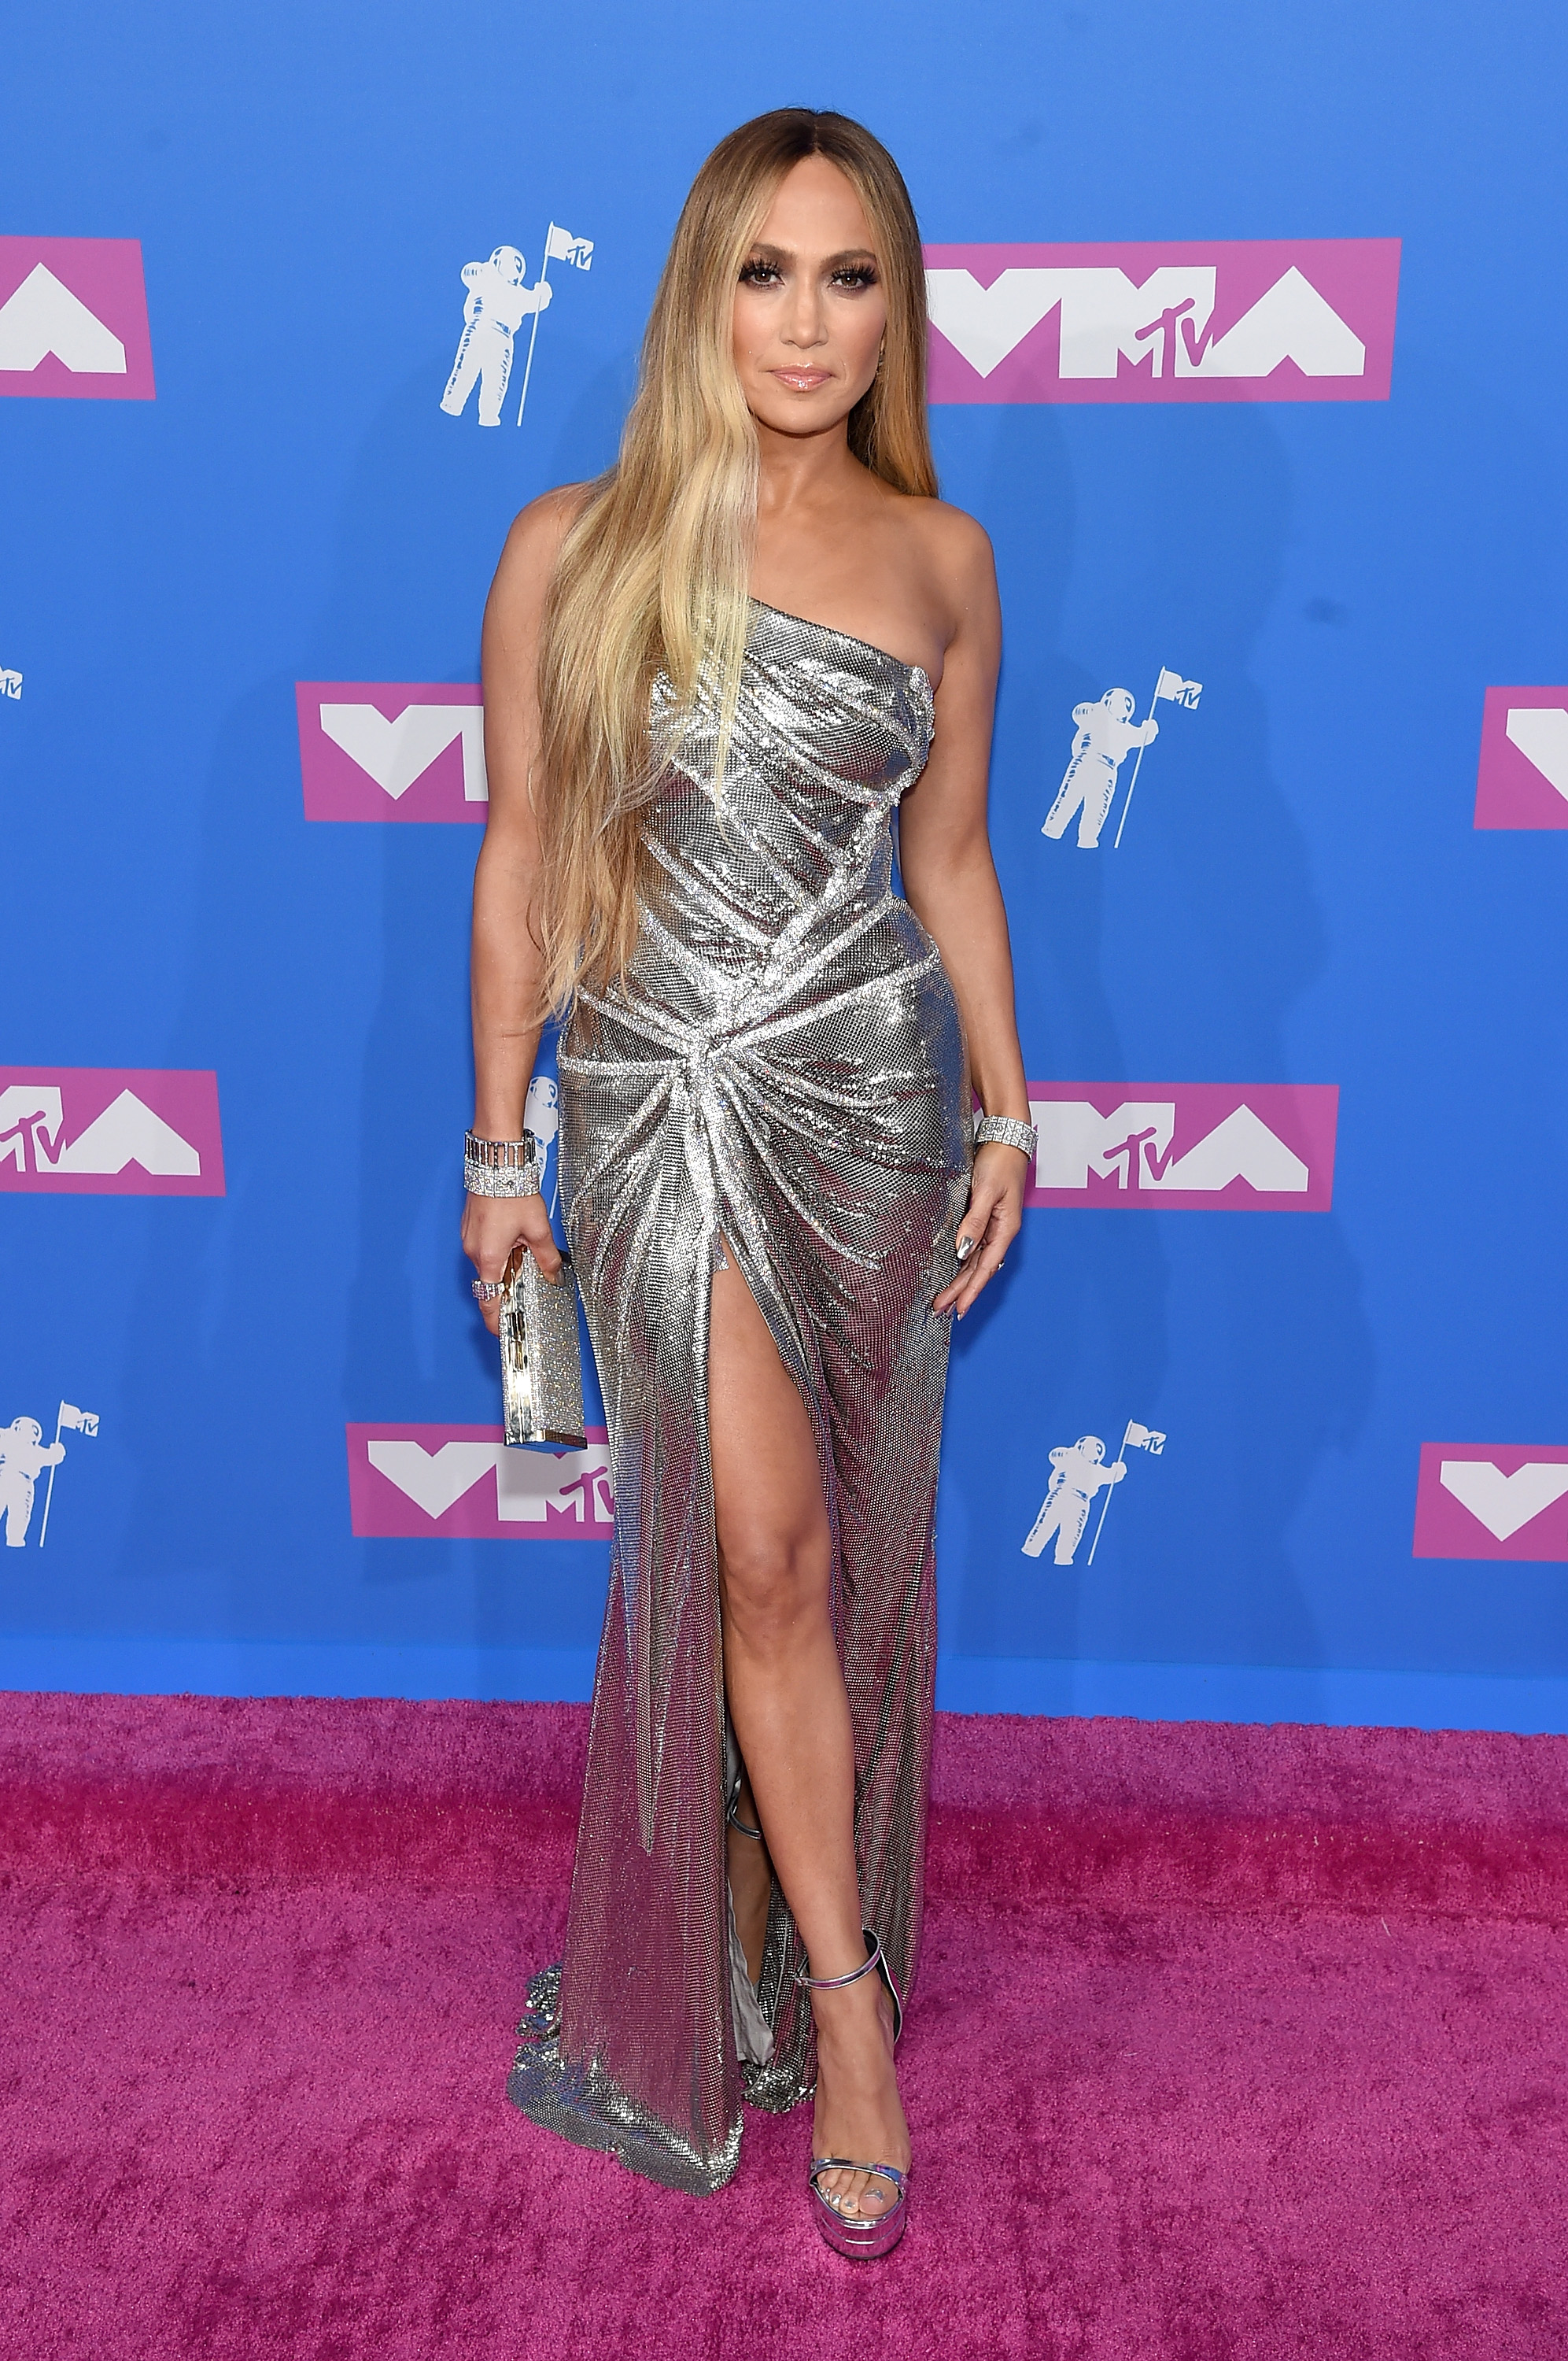 """<p>There is no disputing that Jennifer Lopez is the queen of the red carpet. </p> <p>The triple threat stole the show at yesterday's MTV Video Music Awards in a <a href=""""https://style.nine.com.au/2018/08/21/08/46/style-fashion-mtv-vma-awards-jennifer-lopez"""" target=""""_blank"""" title=""""curve-hugging silver  dress"""" draggable=""""false"""">curve-hugging metallic dress</a> by Versace, and went one step further at the after-party in a <a href=""""https://style.nine.com.au/2018/08/22/08/47/afterparty-mtv-awards"""" target=""""_blank"""" draggable=""""false"""">skintight</a><a href=""""https://style.nine.com.au/2018/08/22/08/47/afterparty-mtv-awards"""" target=""""_blank"""" draggable=""""false"""">bodysuit</a> by the luxury fashion house.</p> <p>J.Lo <a href=""""https://style.nine.com.au/2018/08/01/08/36/denim-boots-jennfifer-lopez"""" target=""""_blank"""" title=""""commanding all the attention """" draggable=""""false"""">commanding all the attention </a>at award shows is nothing new.</p> <p>Less is more is the mantra for the singer, actress and dancer who can do no wrong when it comes to making a statement with daring cuts out, plunging necklines and barely-there hems. </p> <p>The 49 year-old isn't afraid to push the boundaries. No-one can forget the infamous below-the navel Versace frock she wore to the 2000 Grammy Awards. In fact, the dress was so sought-after, Google ChairmanEric Schmidtclaims JLo's jaw-dropping outfit was the reason he launched Google Images.</p> <p>Click through to check out Jennifer Lopez's most standout (and hottest) red carpet looks.</p>"""